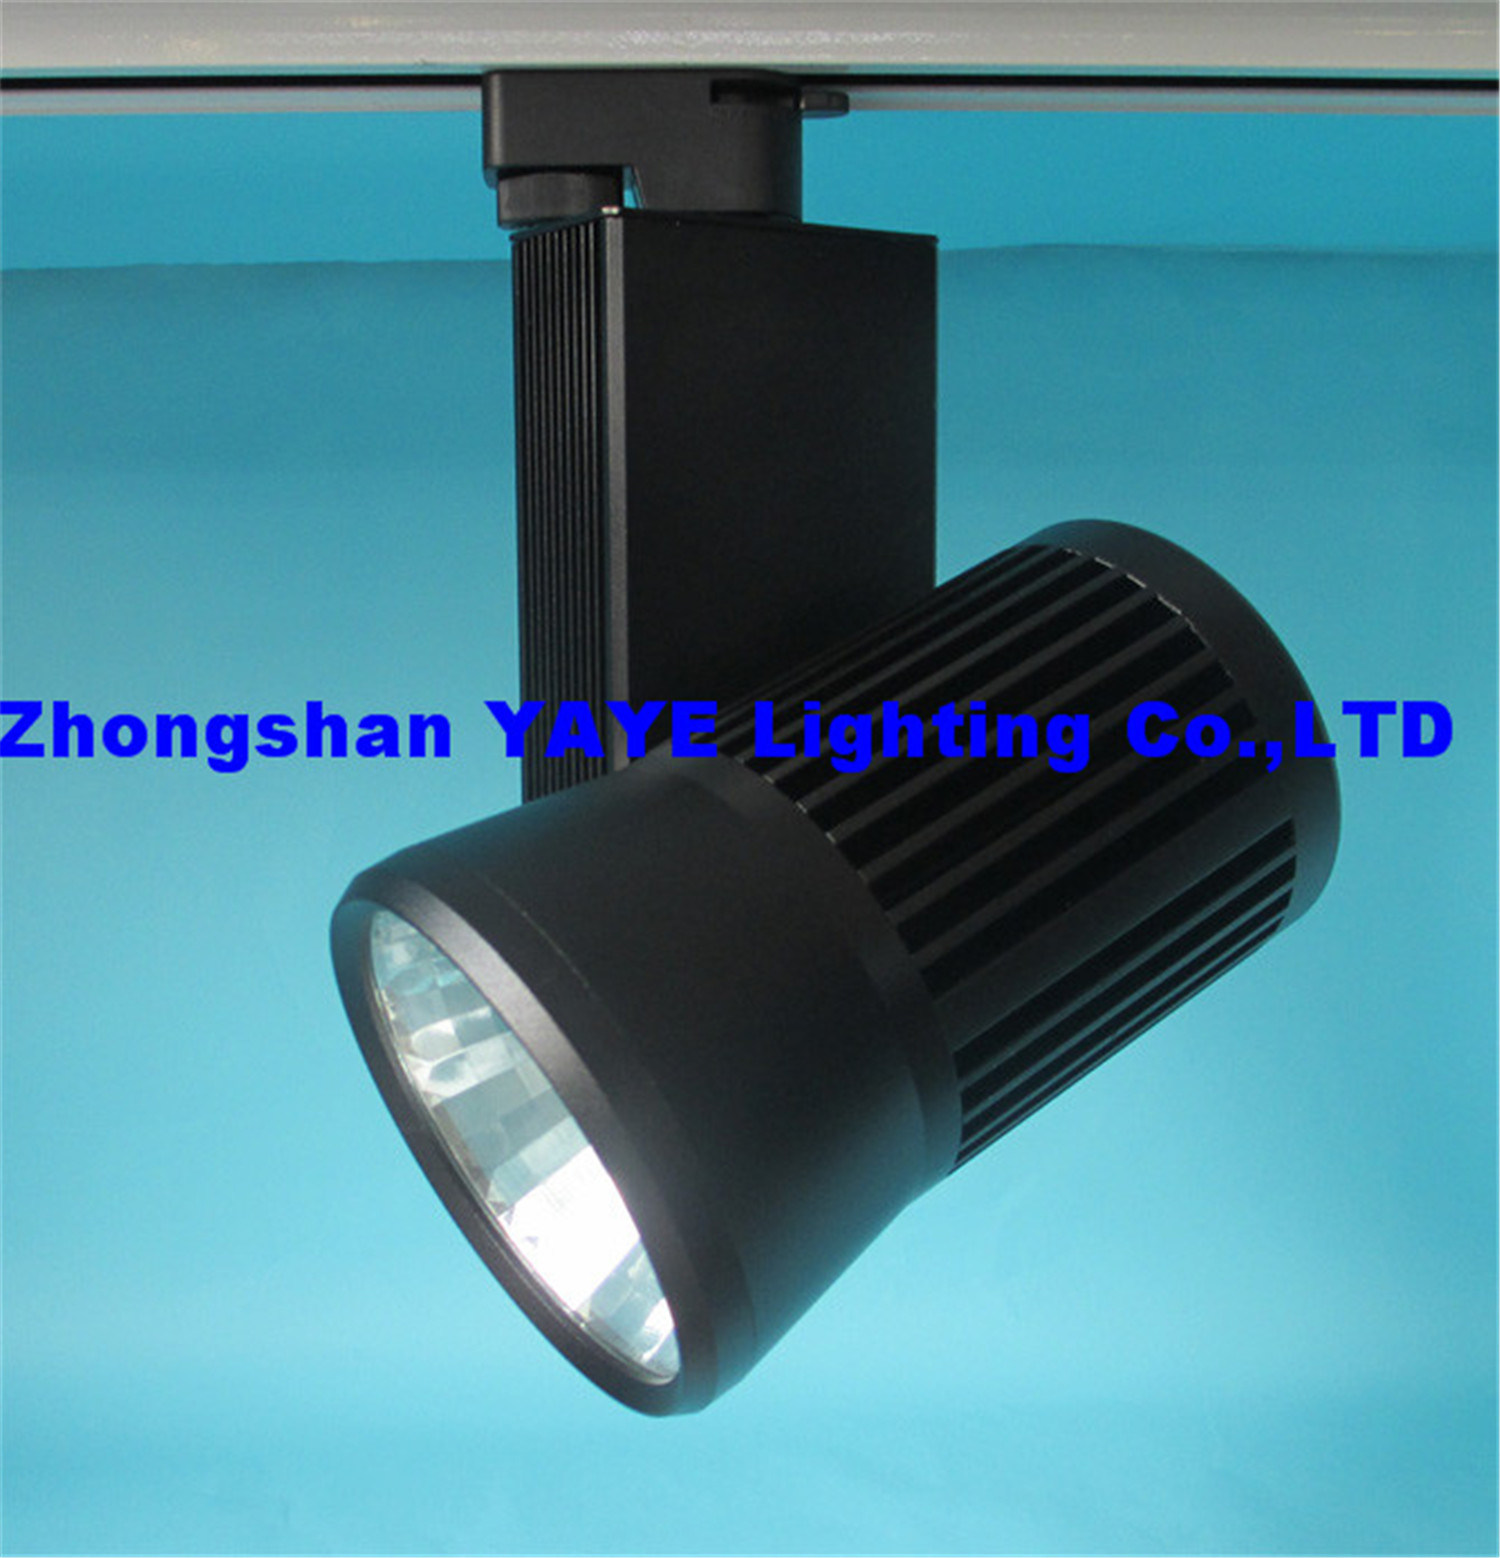 Yaye Hot Sell CE /RoHS Passed 2/3/4-Wires 20W/30W COB LED Track Light / Track LED Light